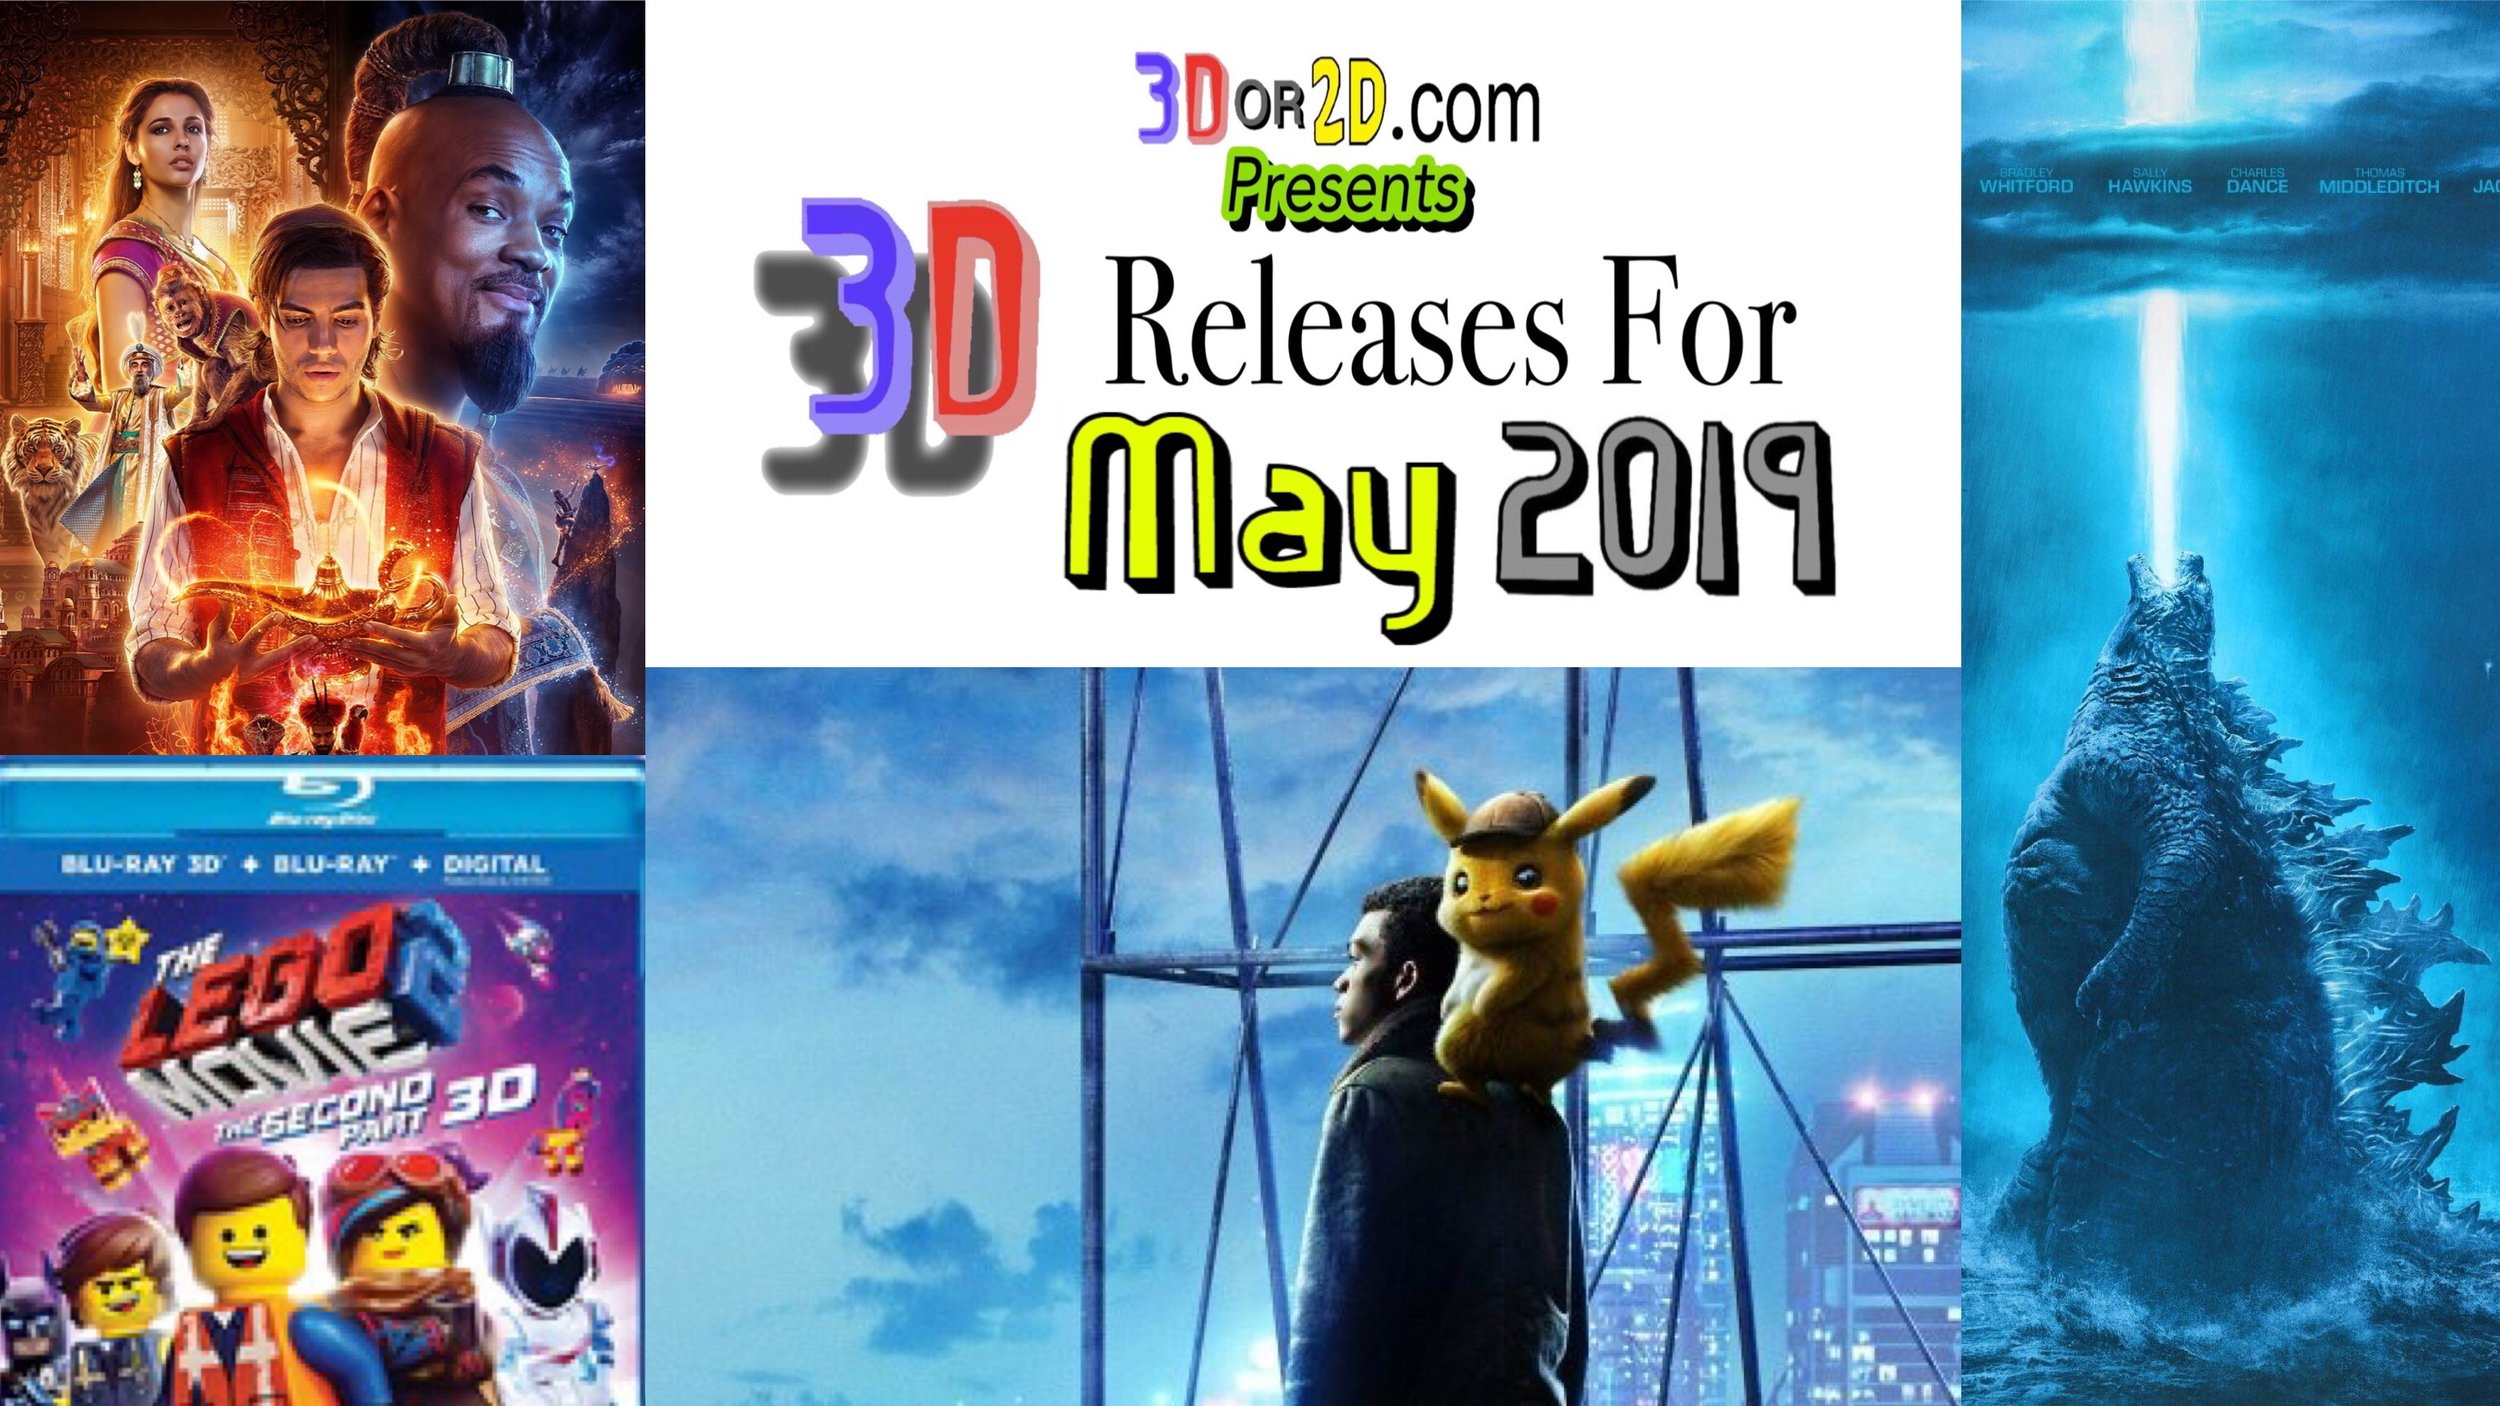 3d-releases-may-2019.JPG